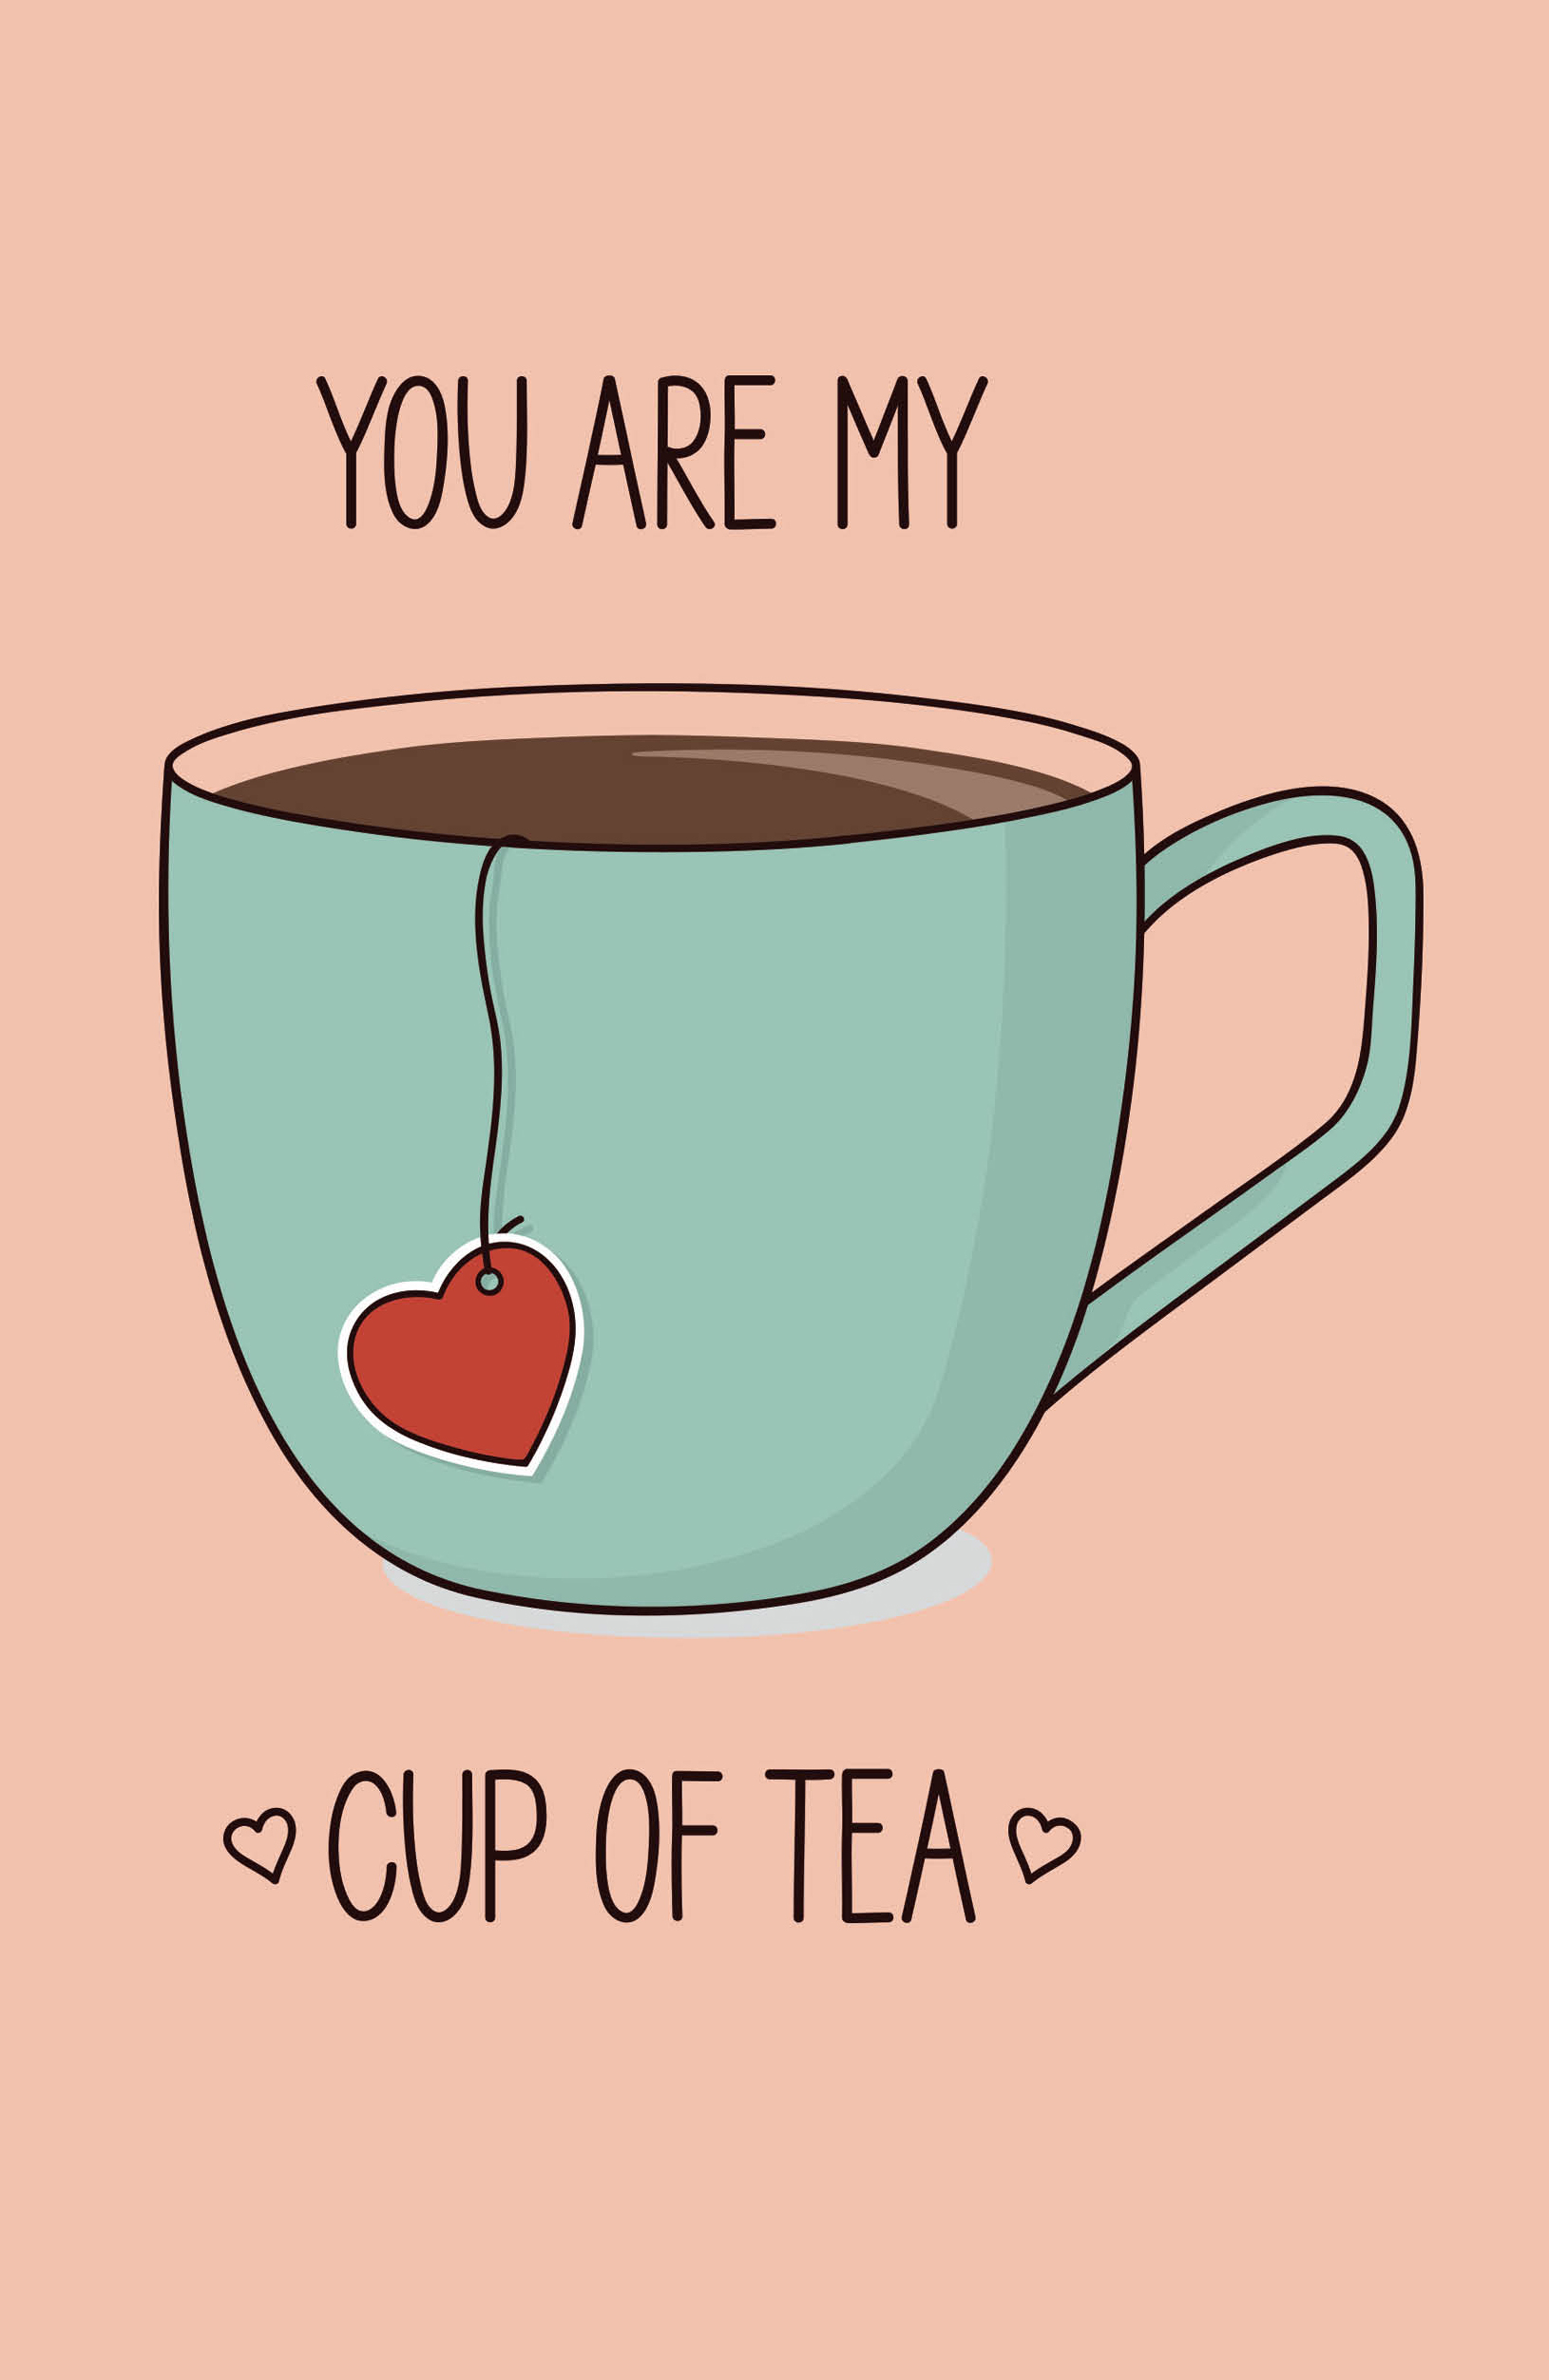 You are my cup of tea (aquamarine cup) (А5)